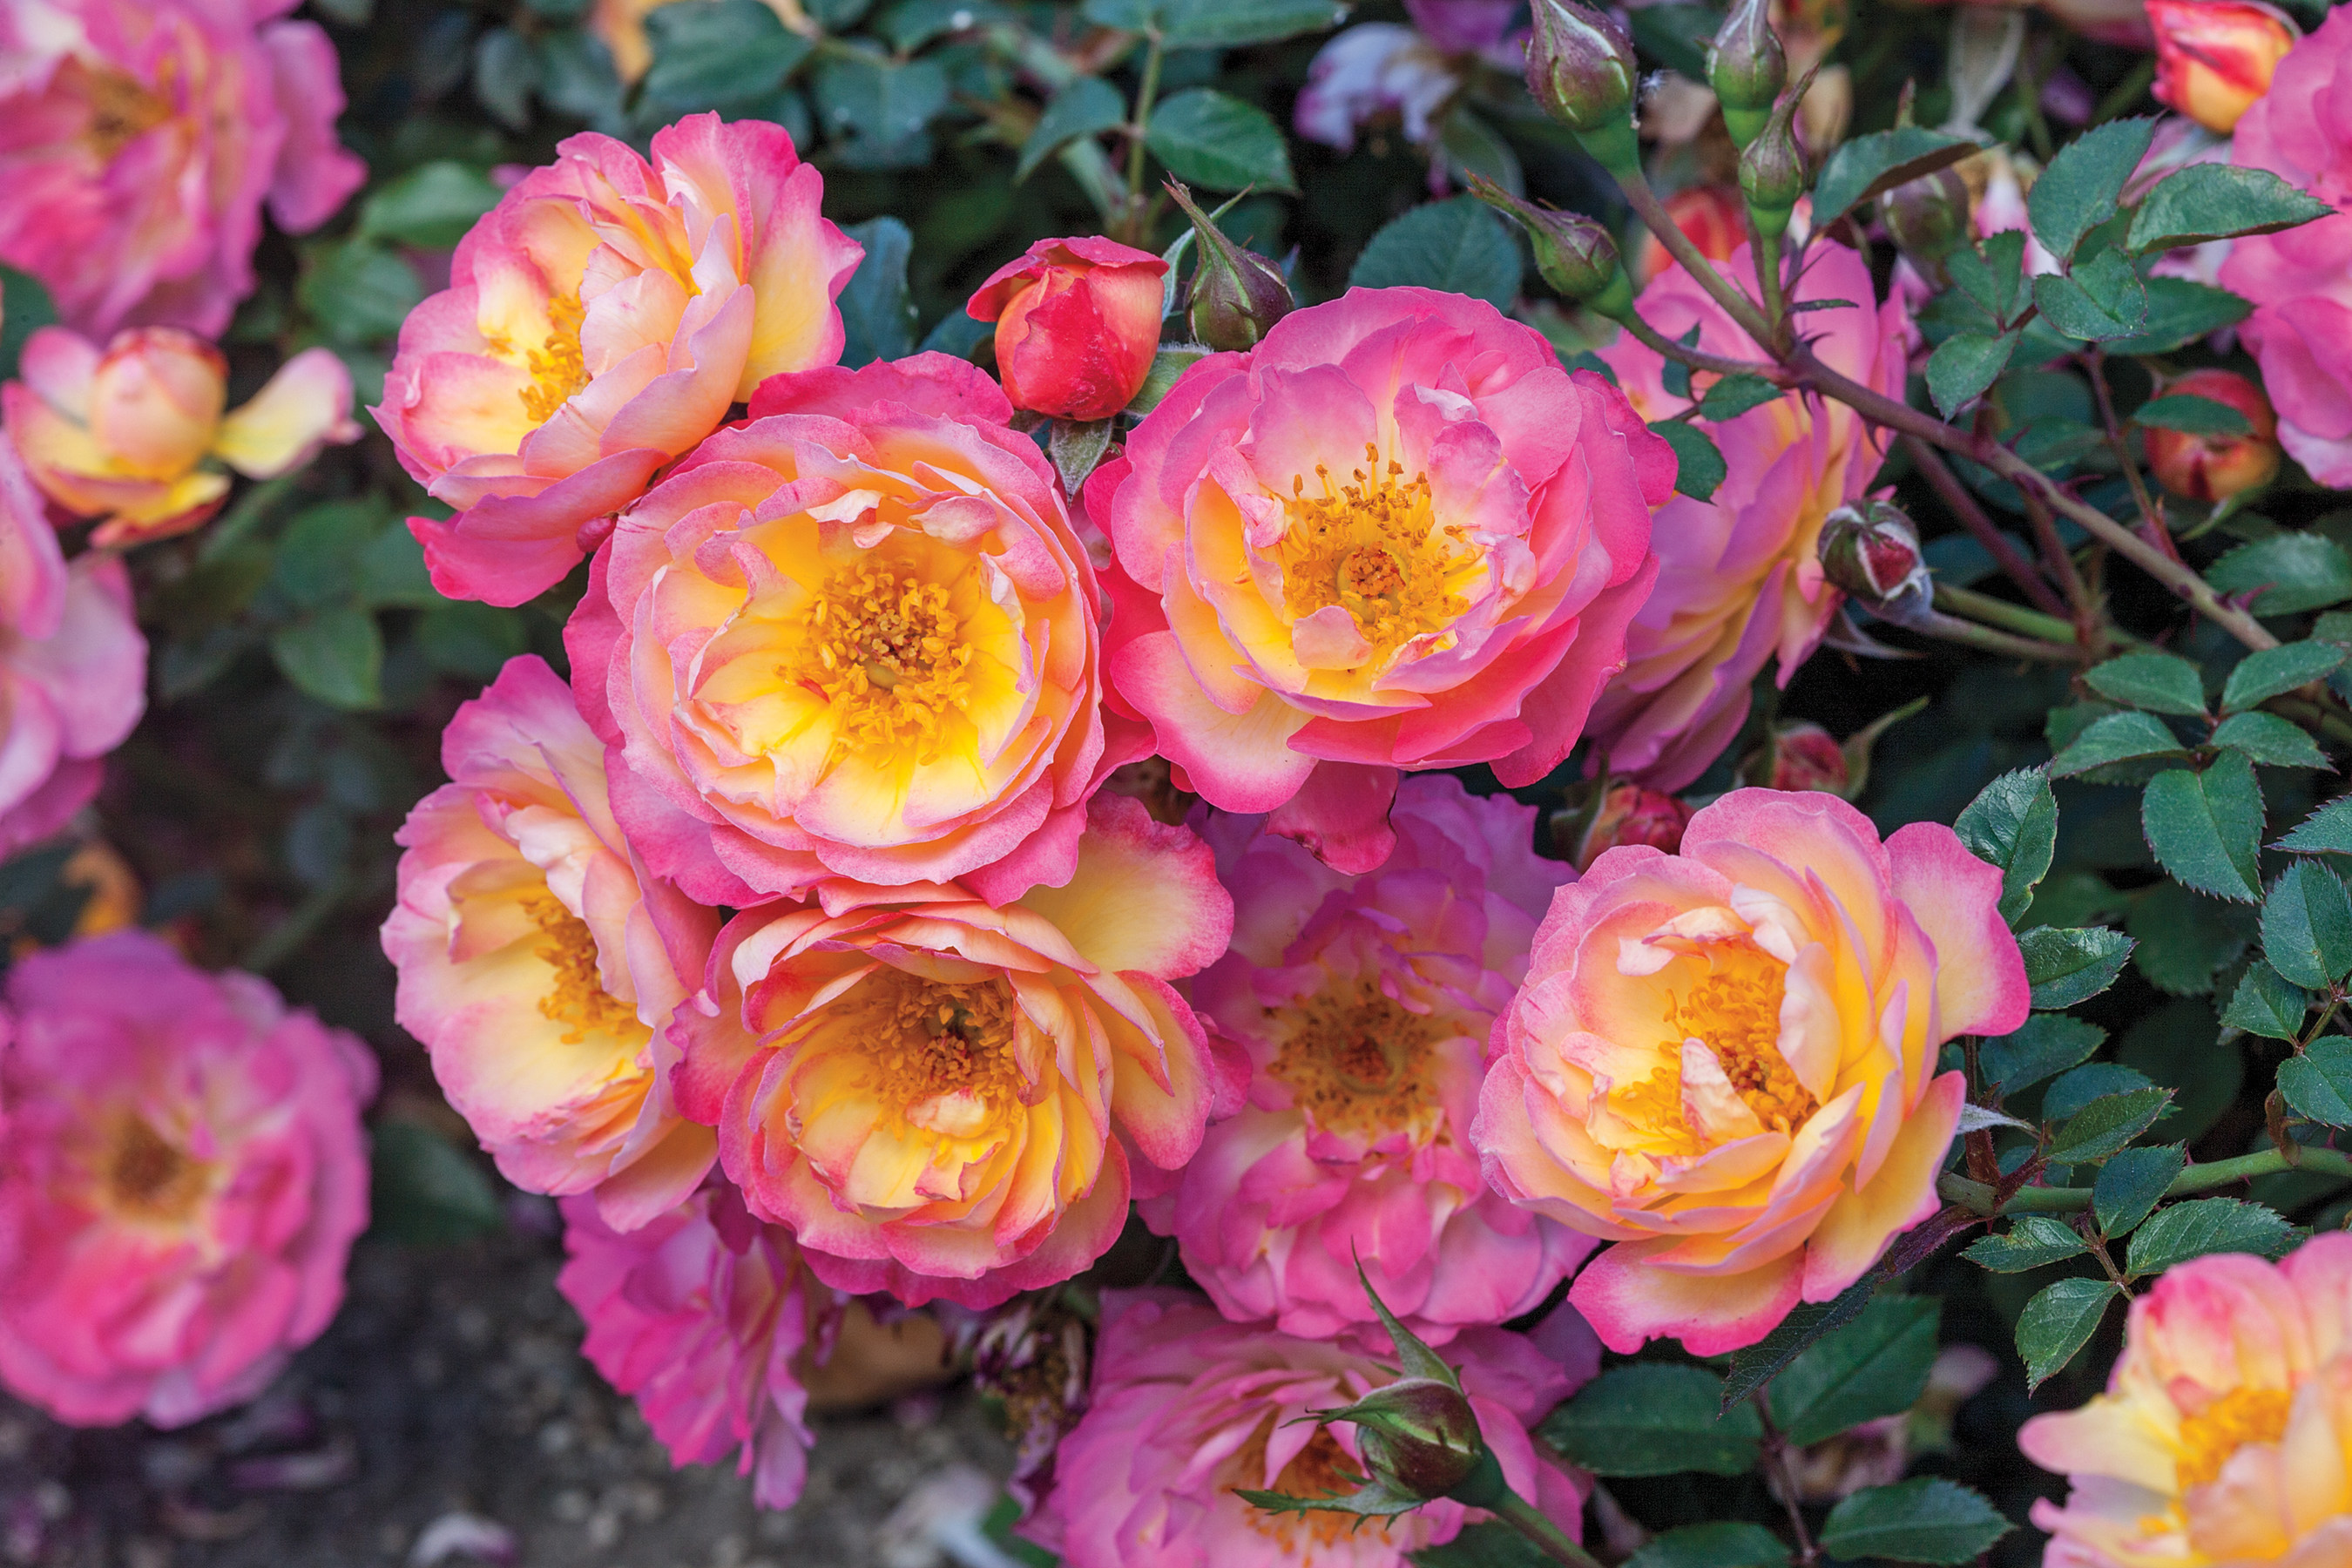 Weeks Roses Reveals Five Tips For Growing Healthy Roses